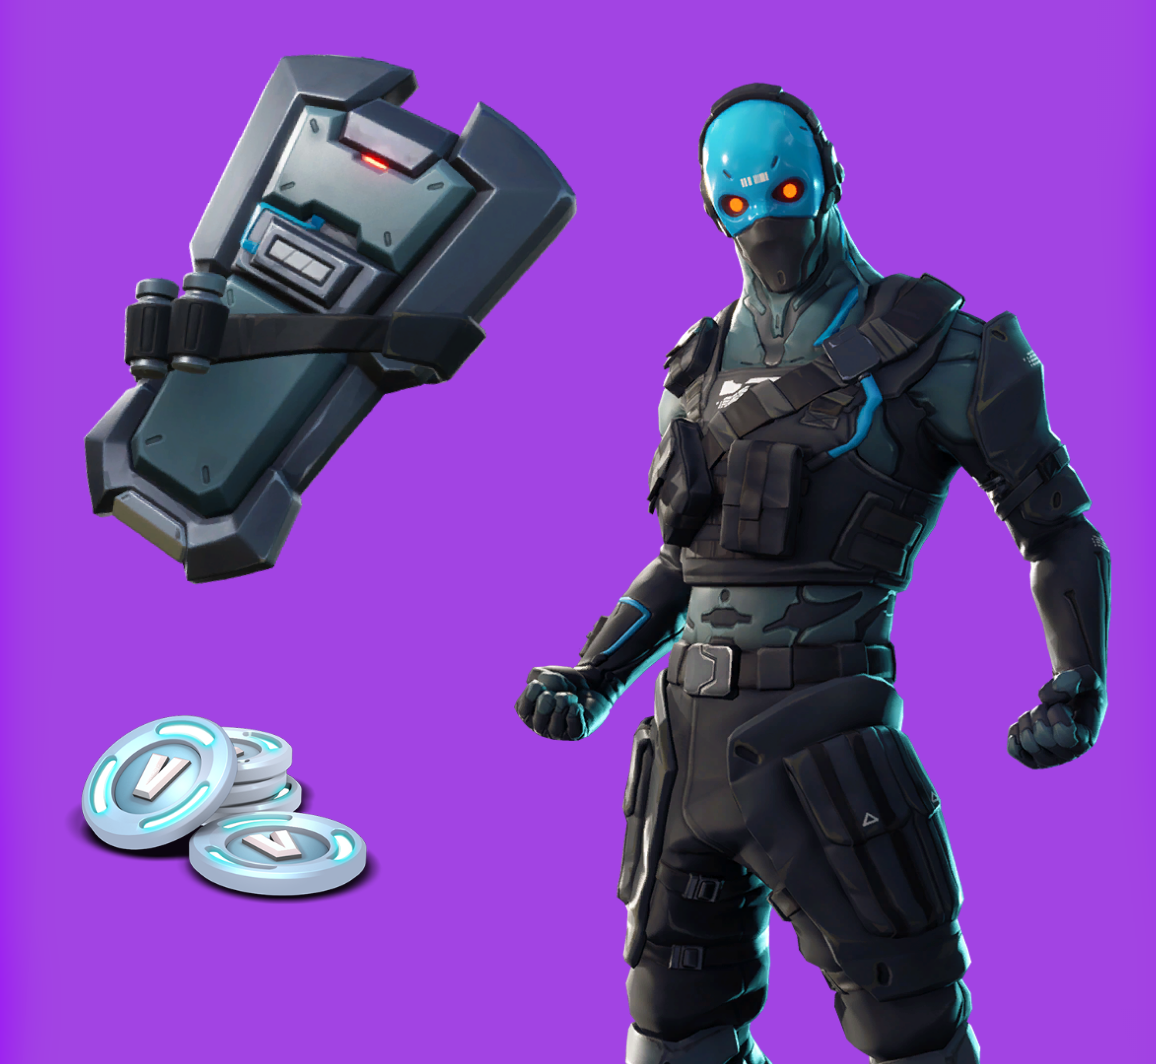 What I Think The New 5 Dollar Starter Pack Might Be Via R